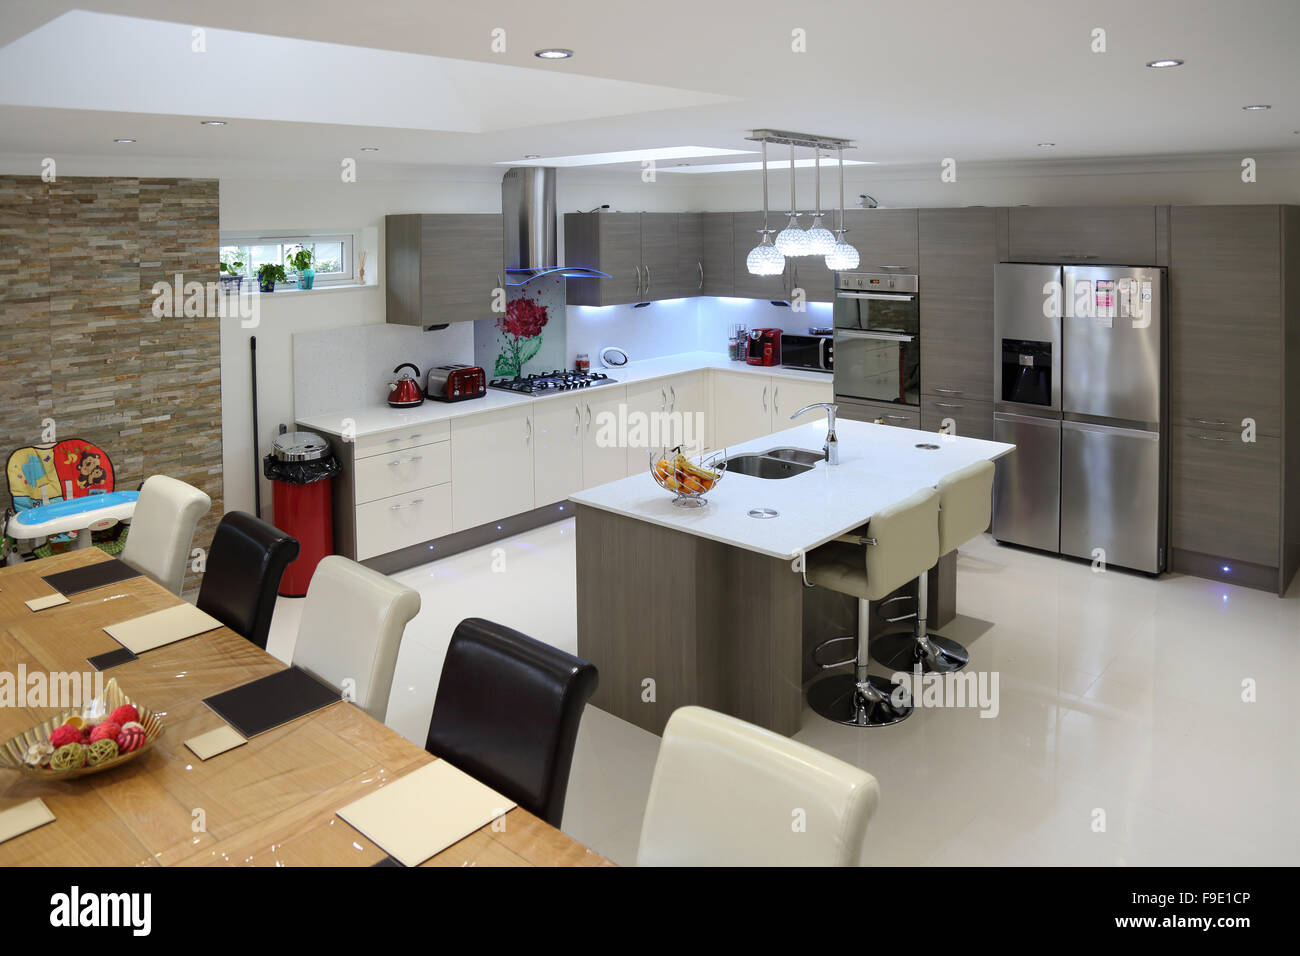 Kitchen dining room in a newly refurbished house showing Living room bar with fridge